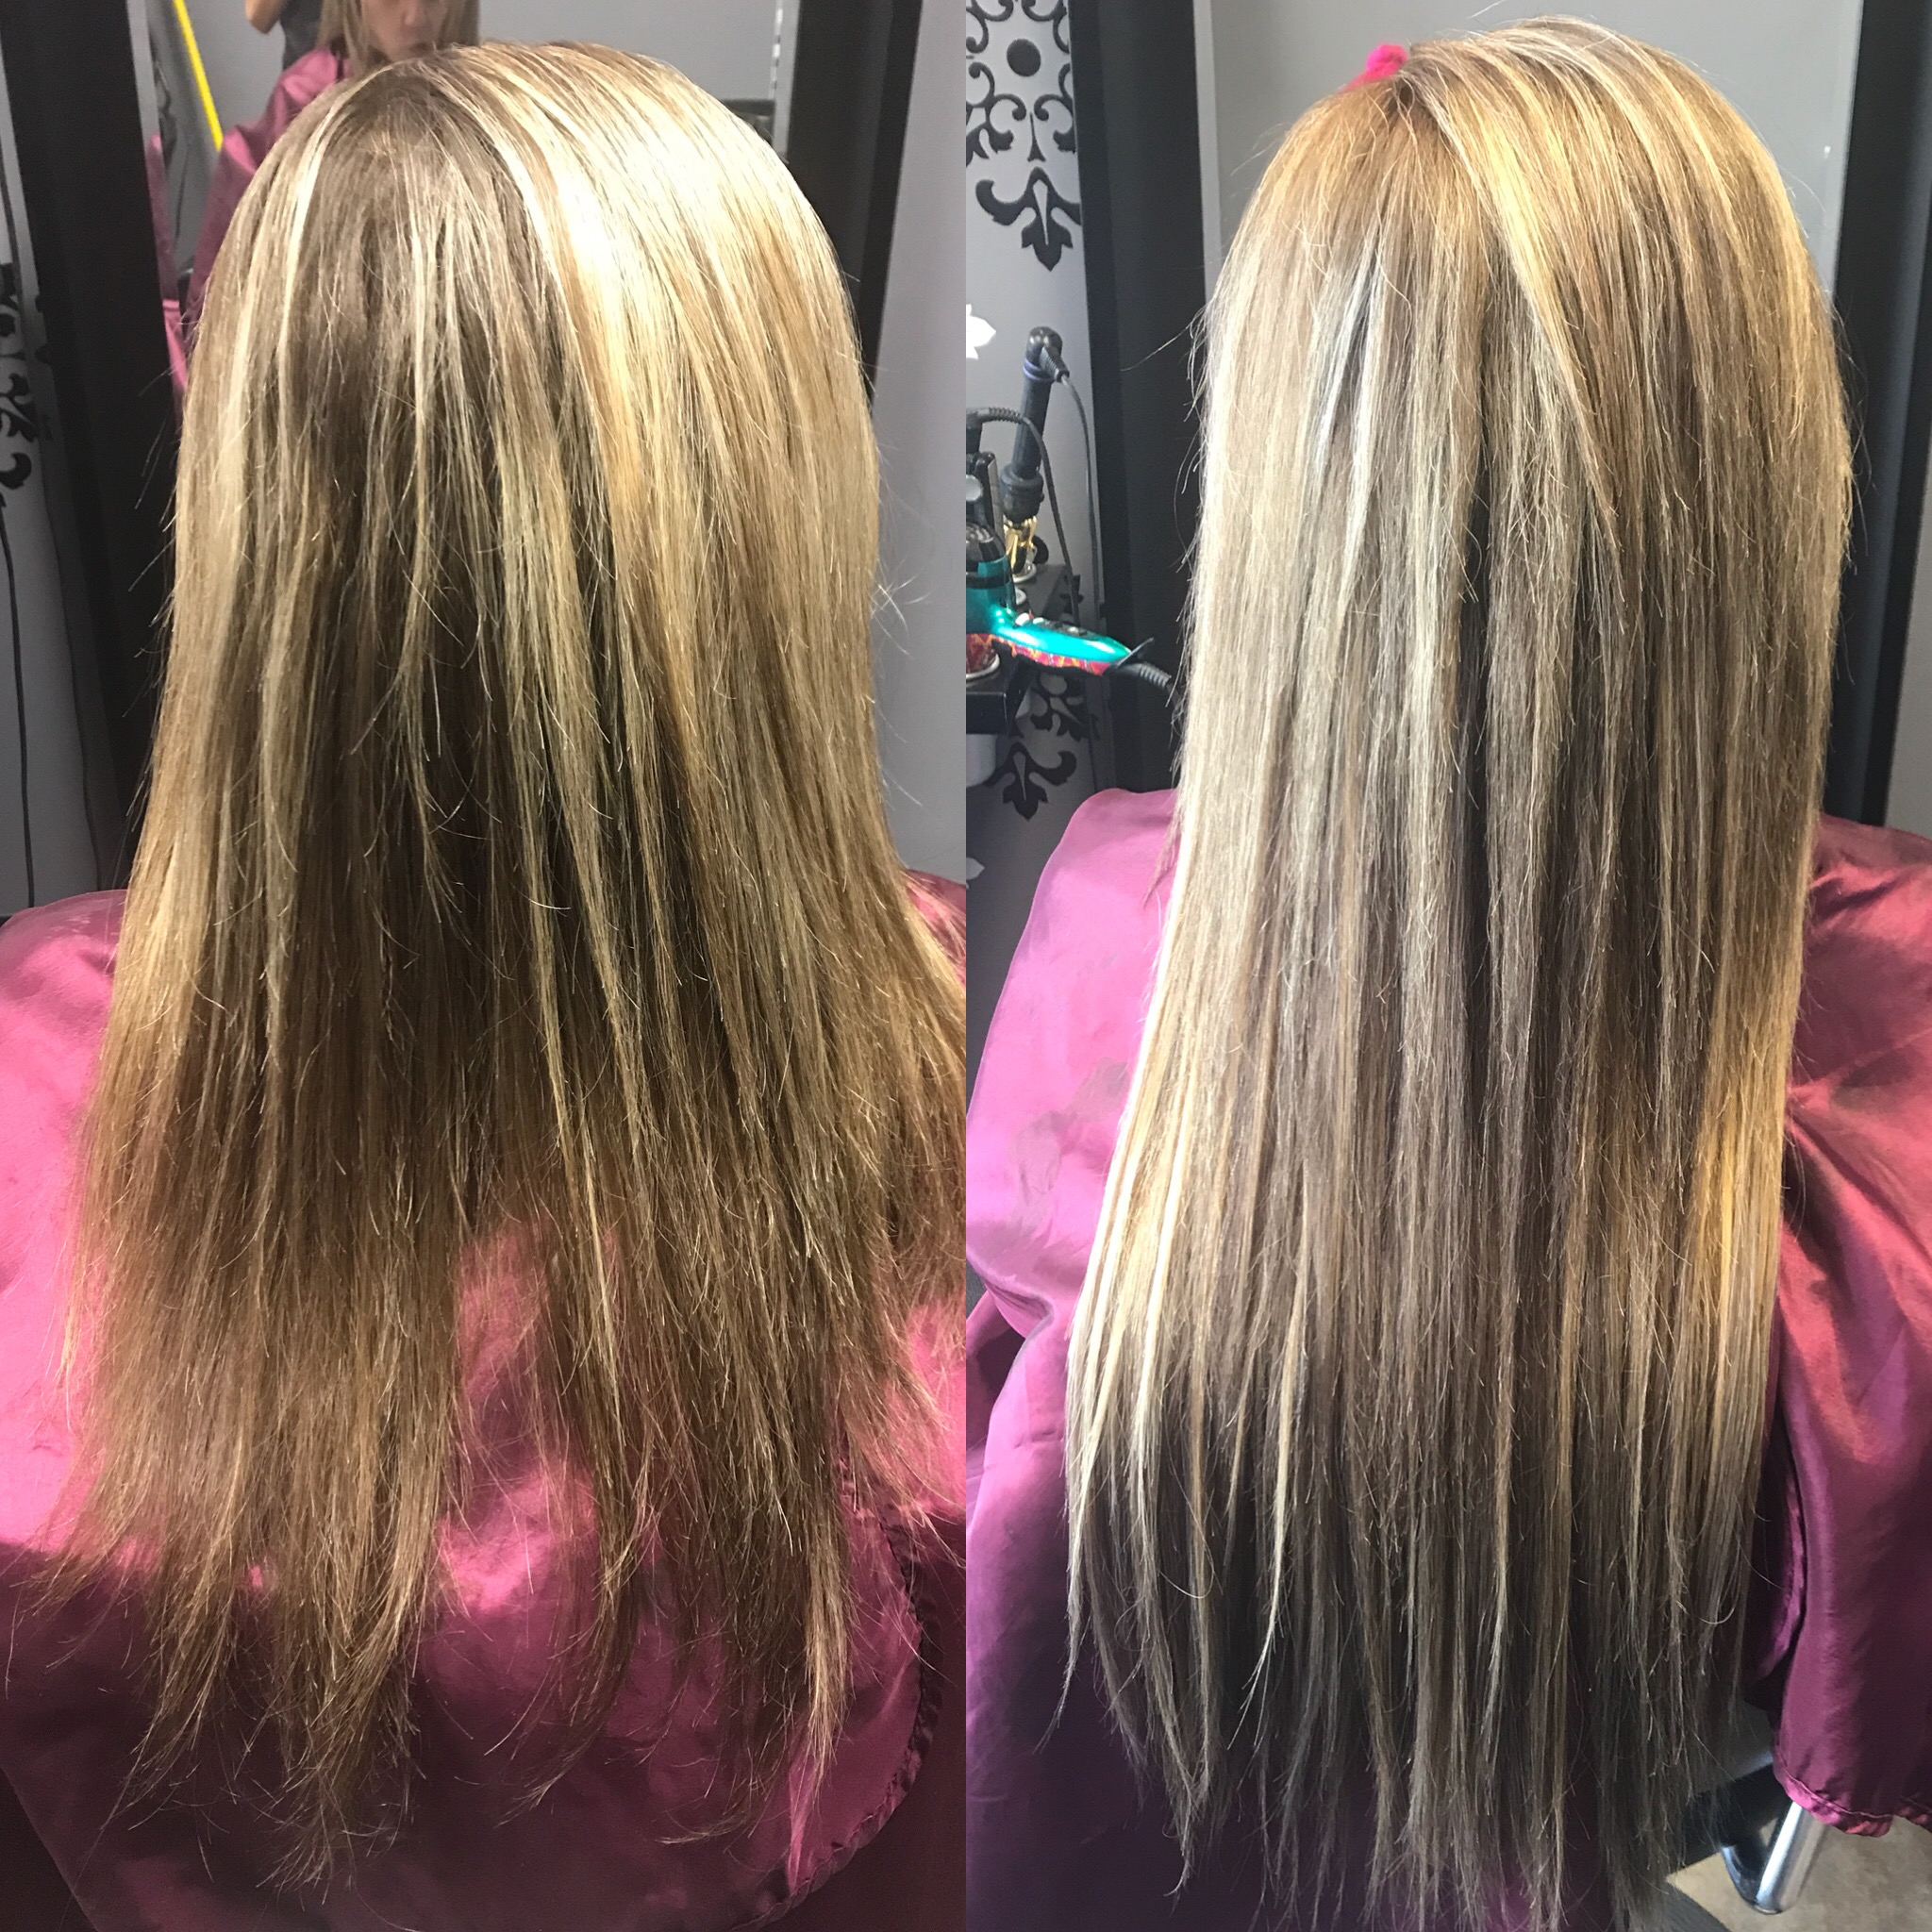 BLONDE PARTIAL HIGHLIGHT AND LAS VEGAS HAIR EXTENSIONS